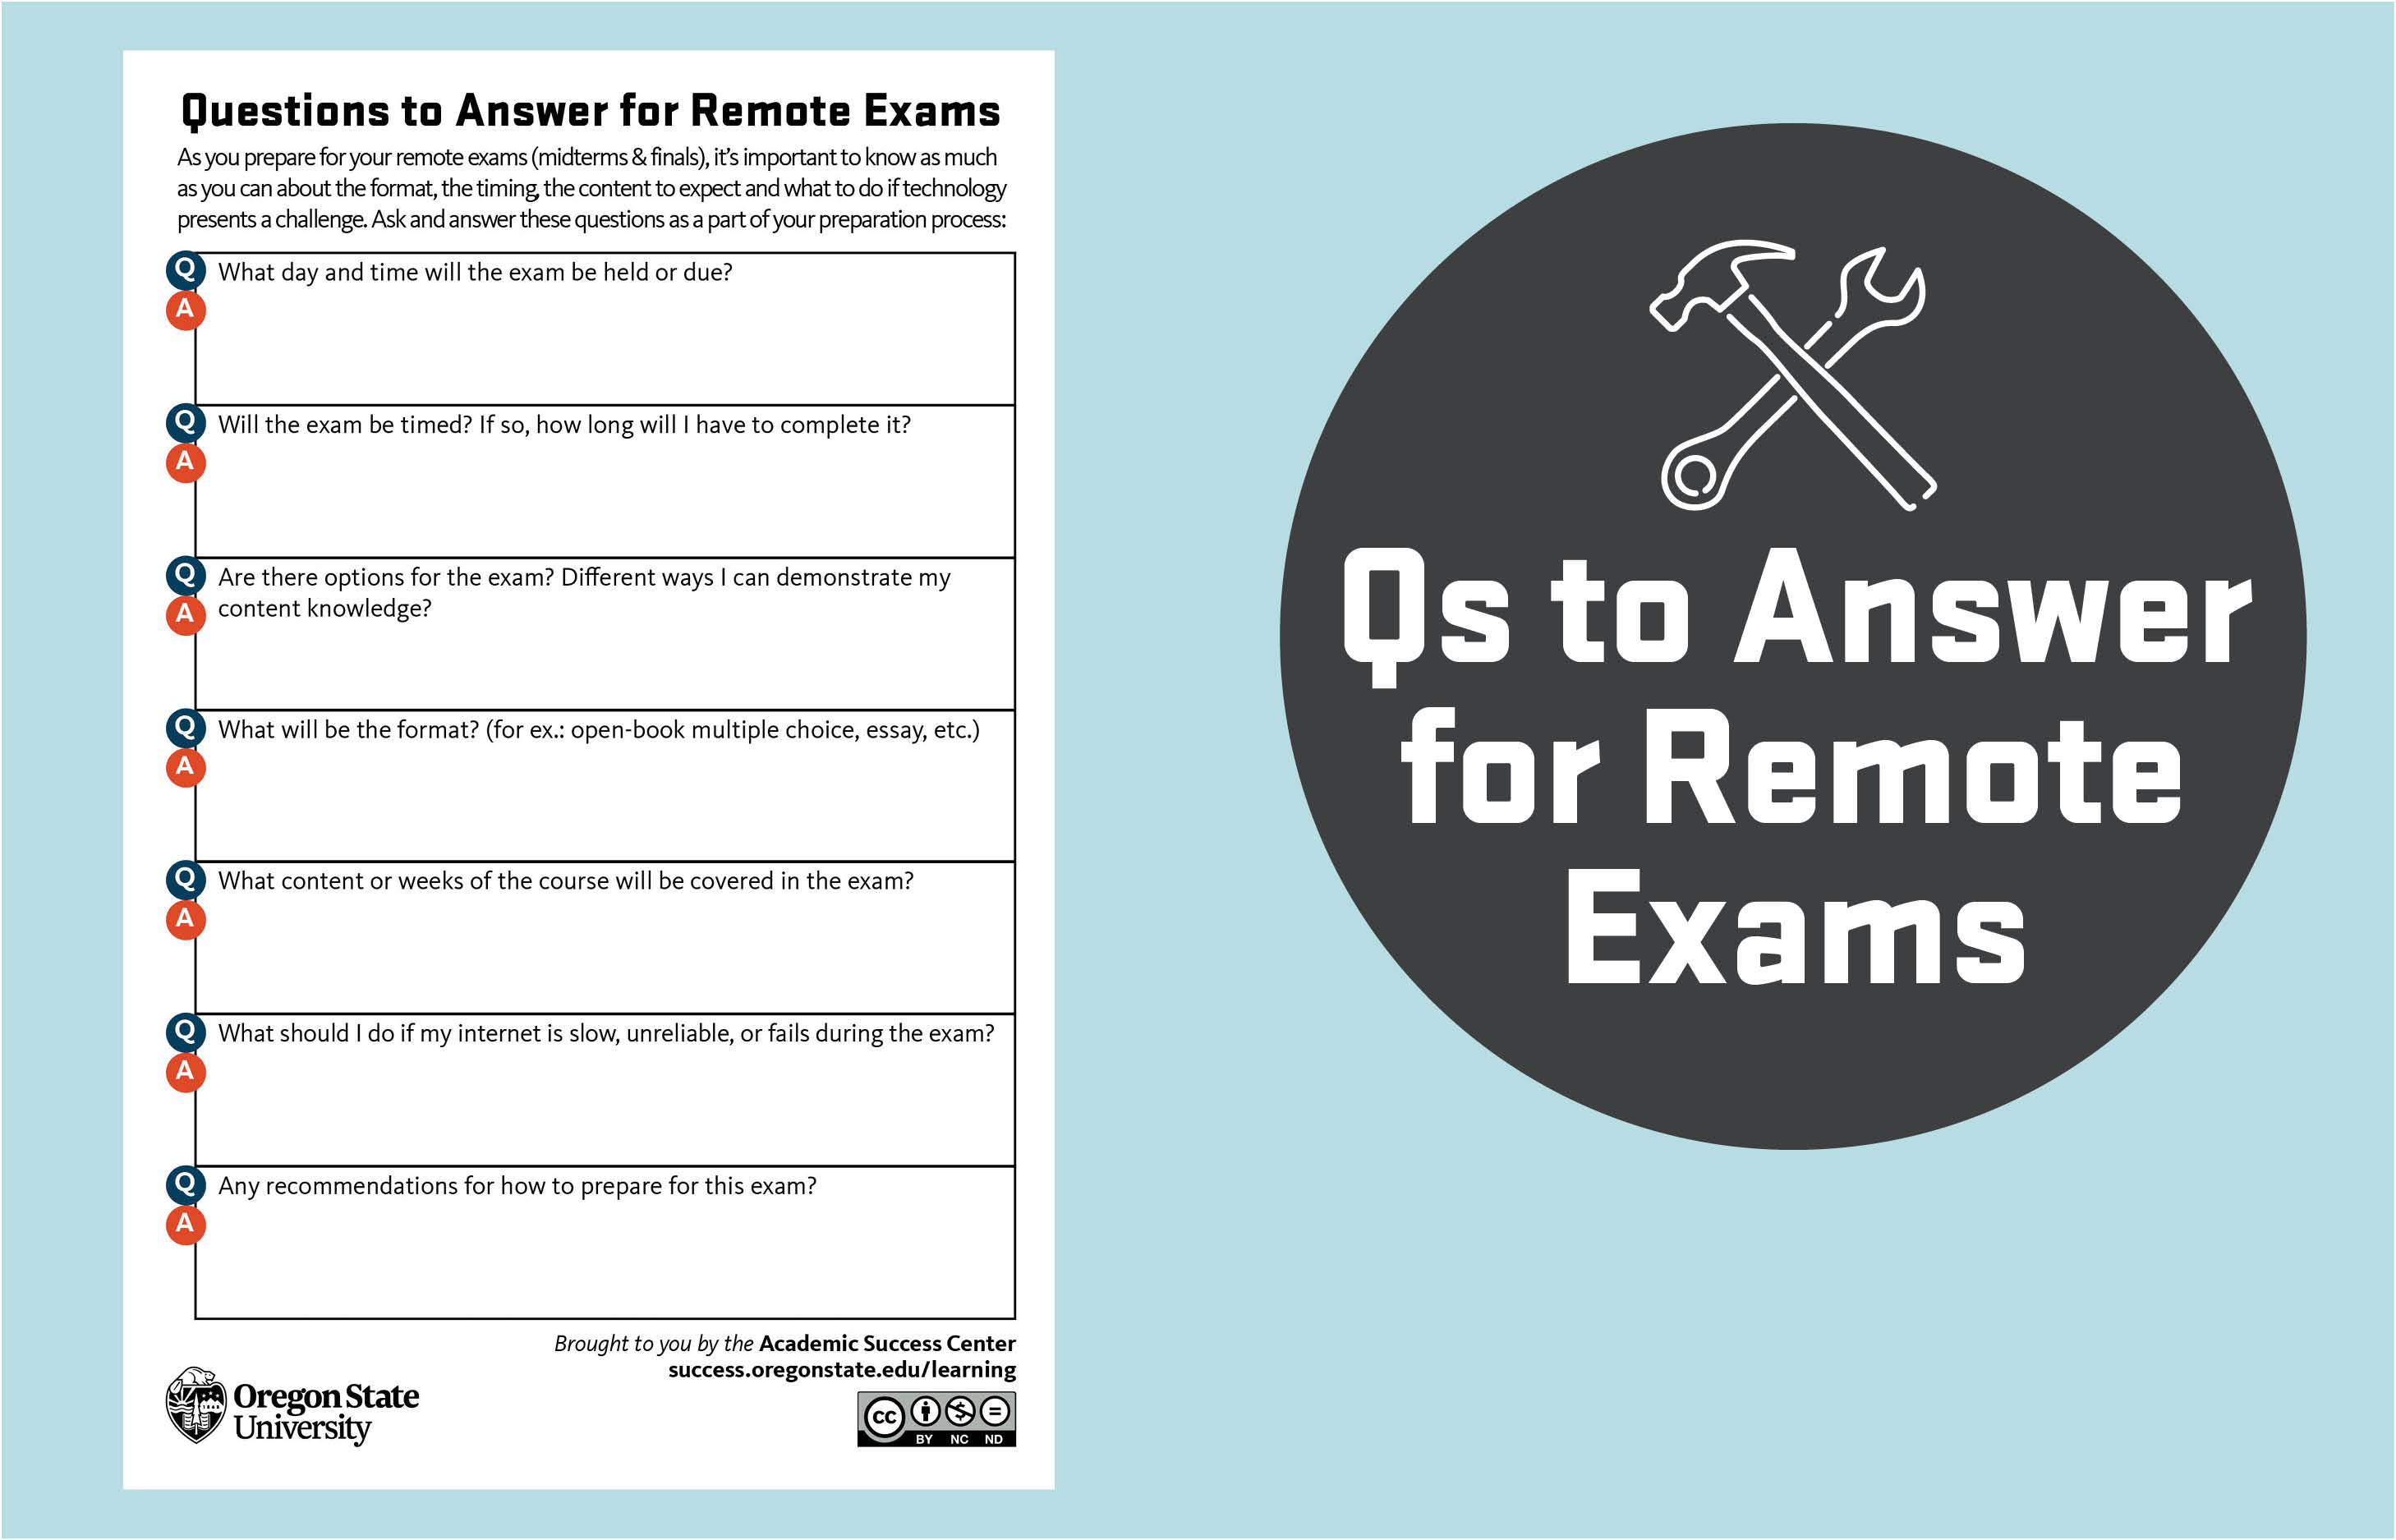 Qs to answer for Remote Exams